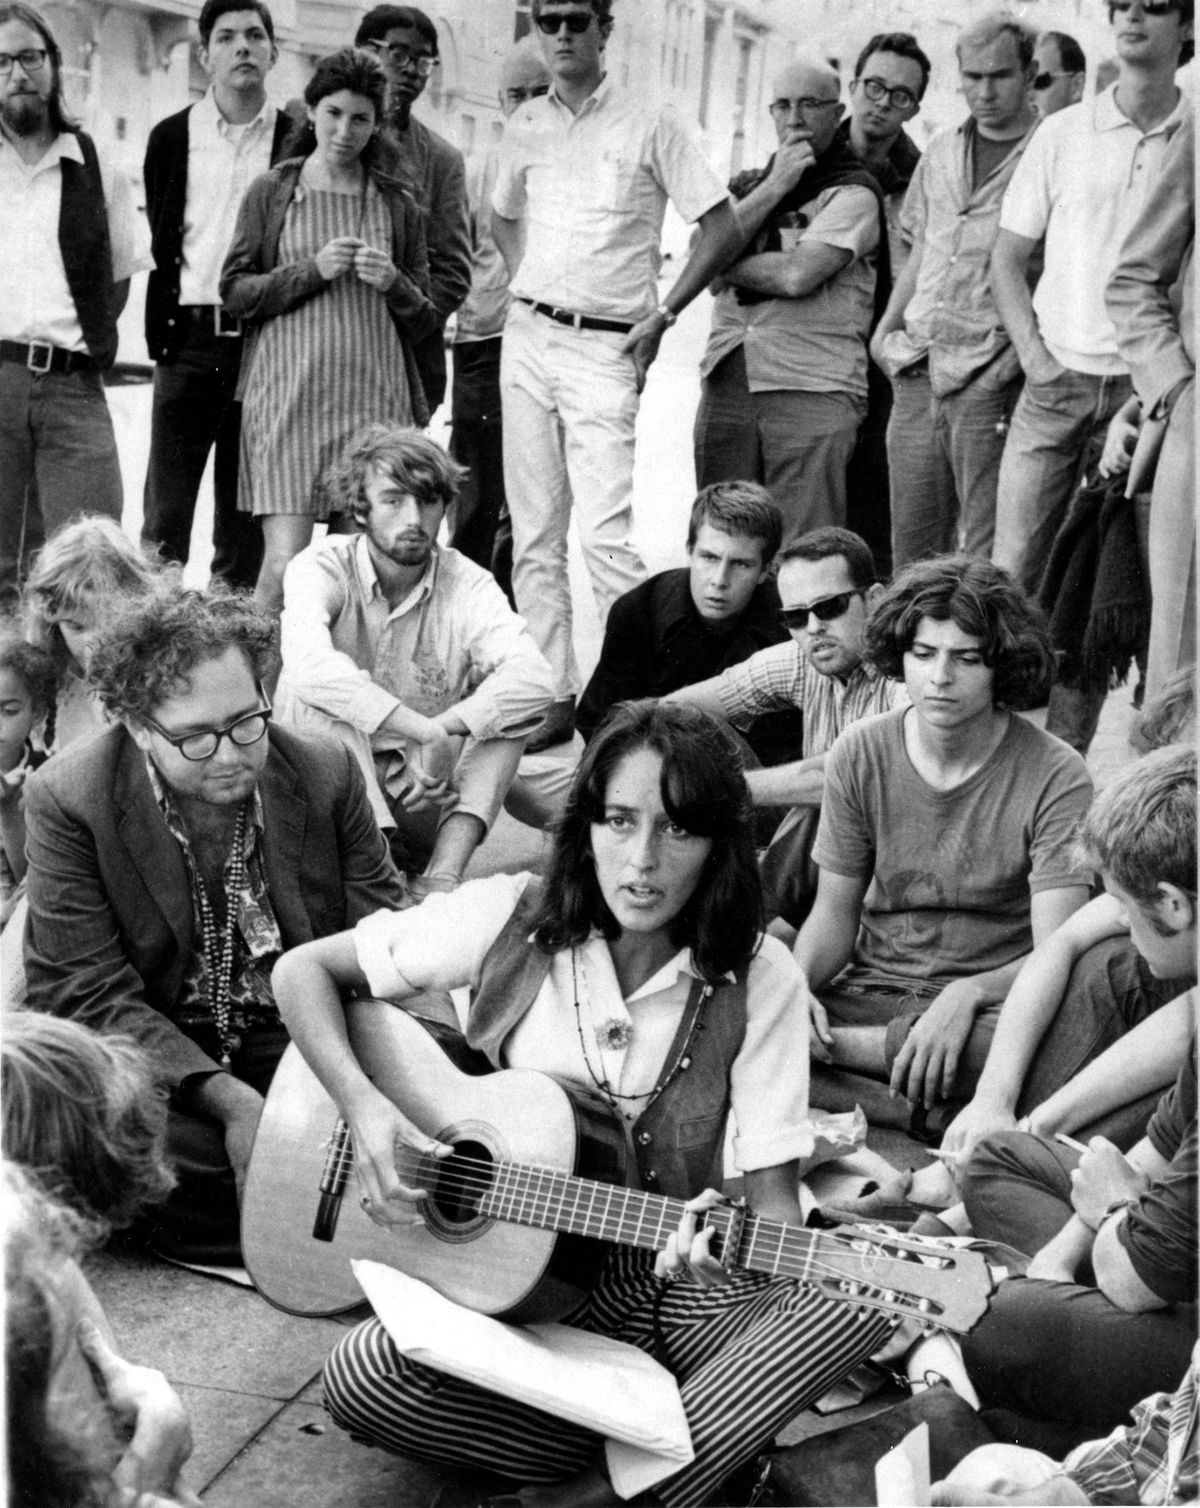 A more familiar scene from the Summer of Love: Joan Baez performs at the corner of Haight and Ashbury, September 1967.